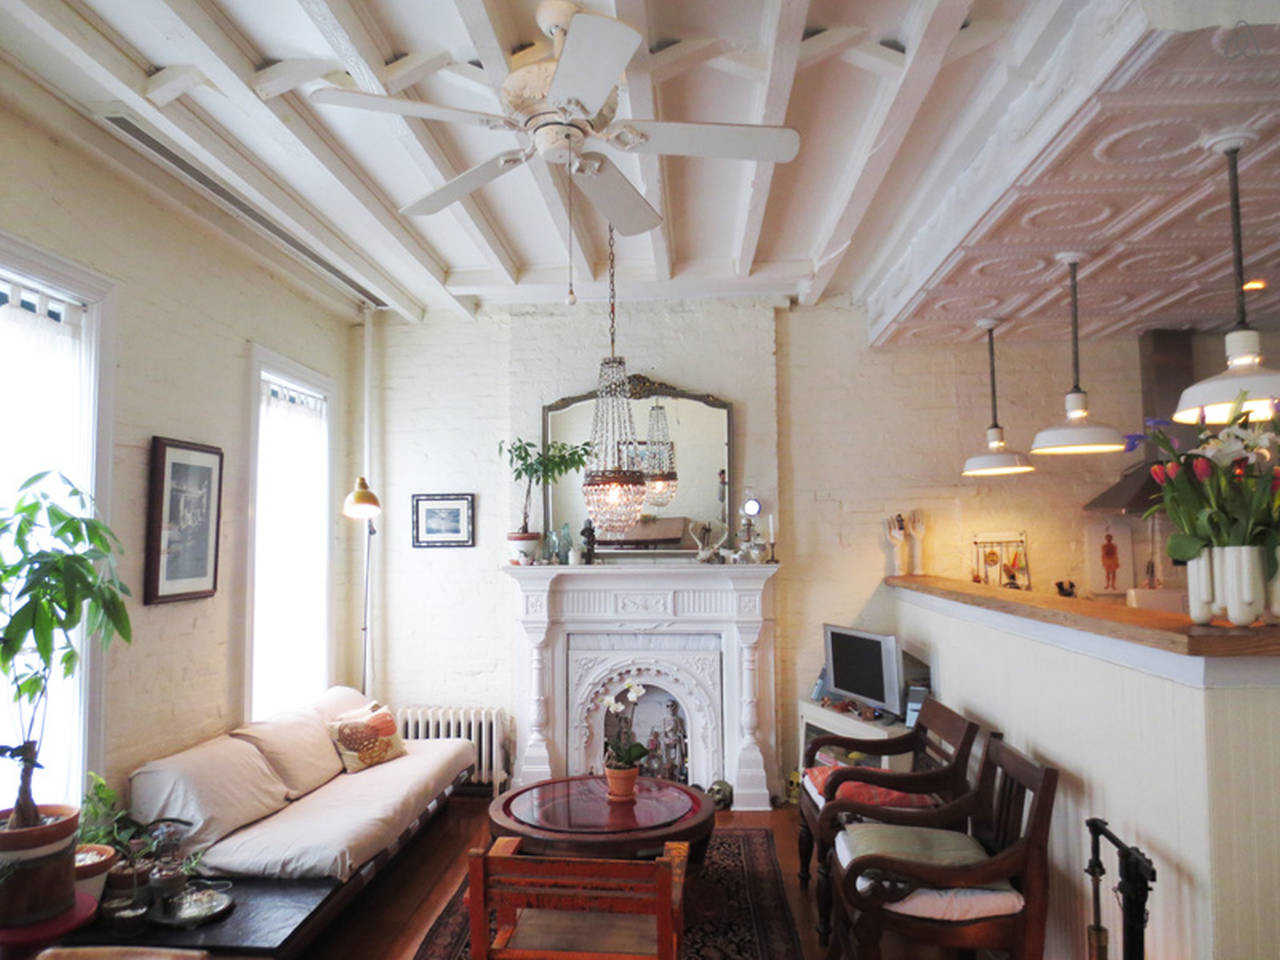 high ceilings in the vintage style living room